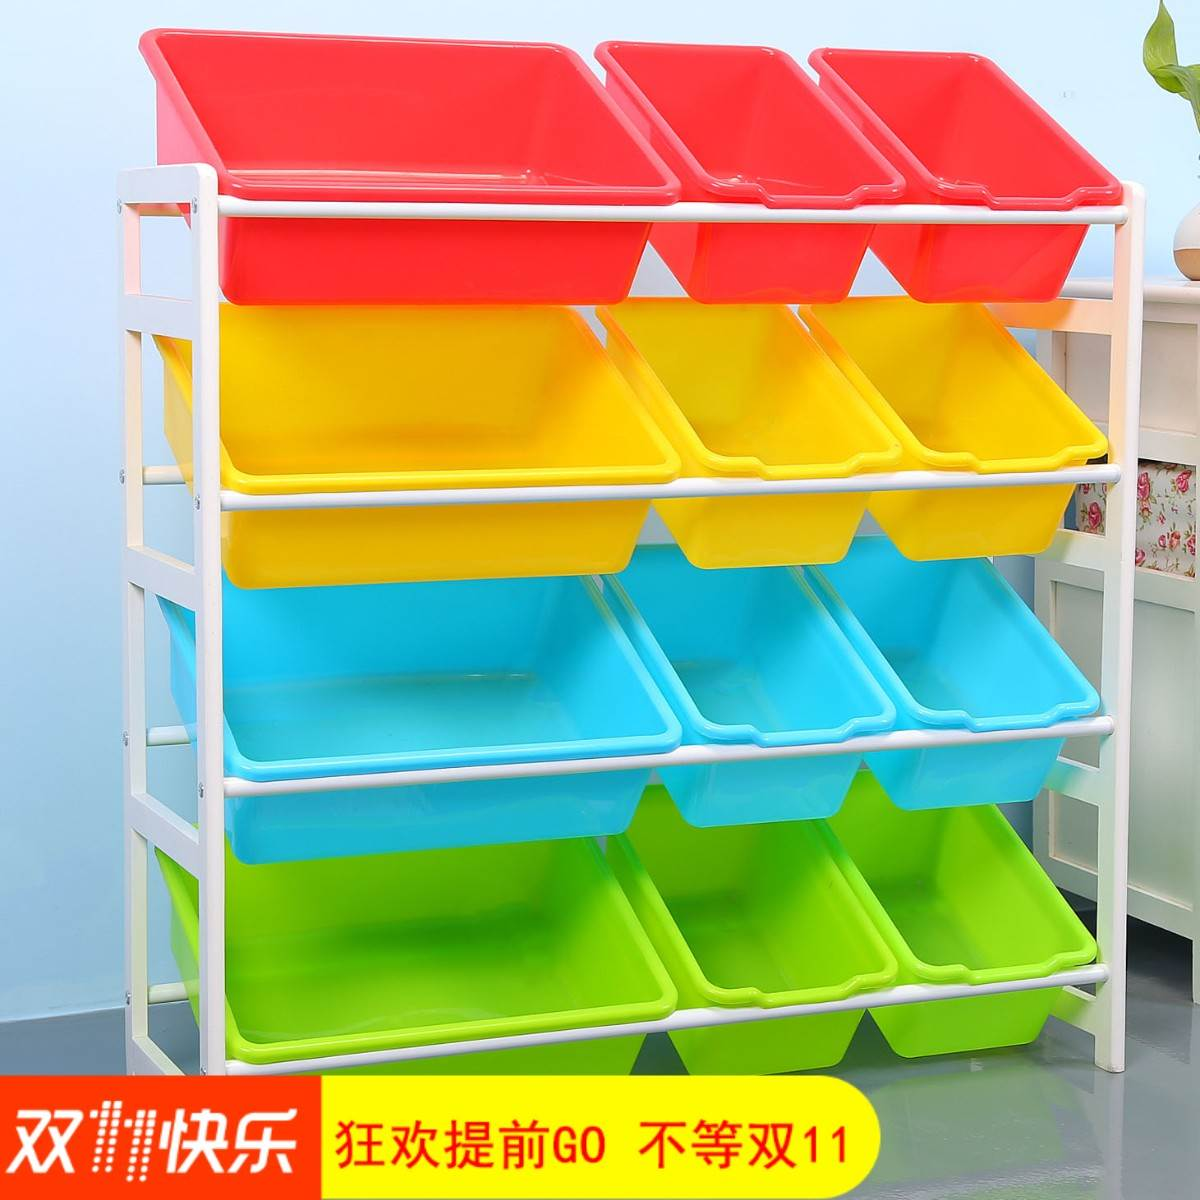 Decorative toy cabinet, side cabinet, role play area, display cabinet, multi-layer shoe cabinet, childrens house type